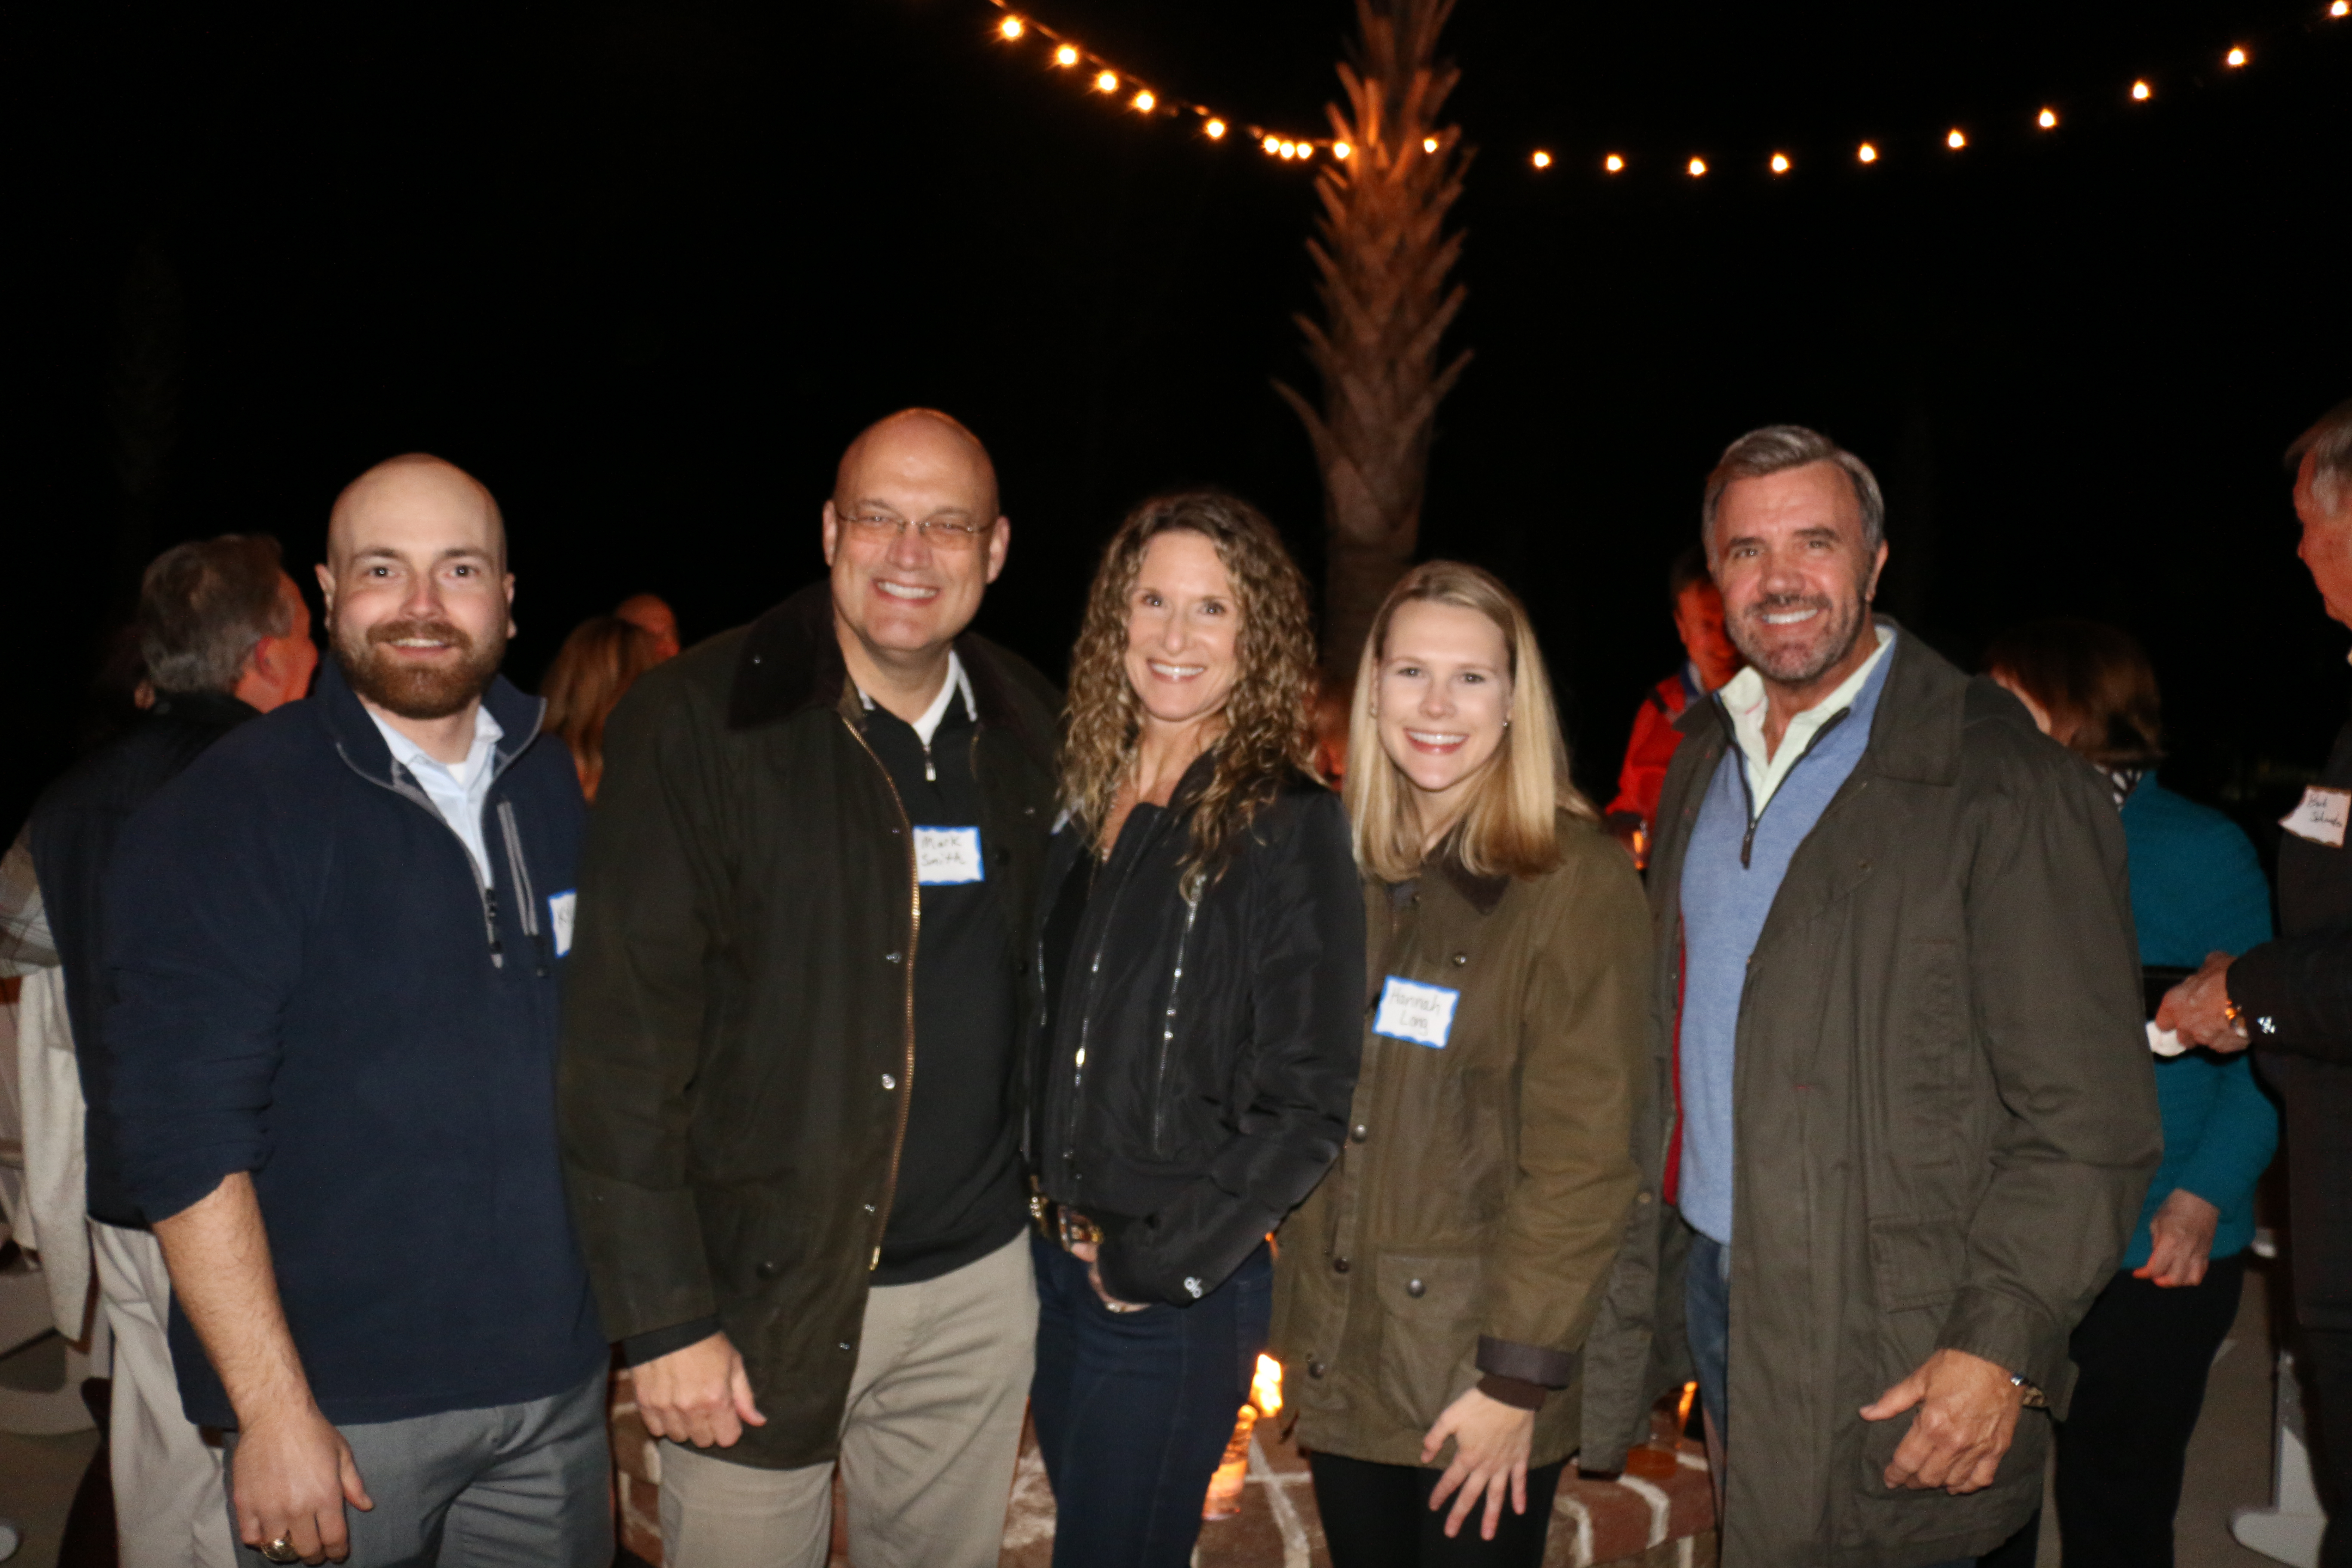 Even after the sun went down on Daniel Island, Kyle Taylor, Mark Smith, Elayne Smith, Hannah Long and Bill Stovall gathered in good company at the networking event.